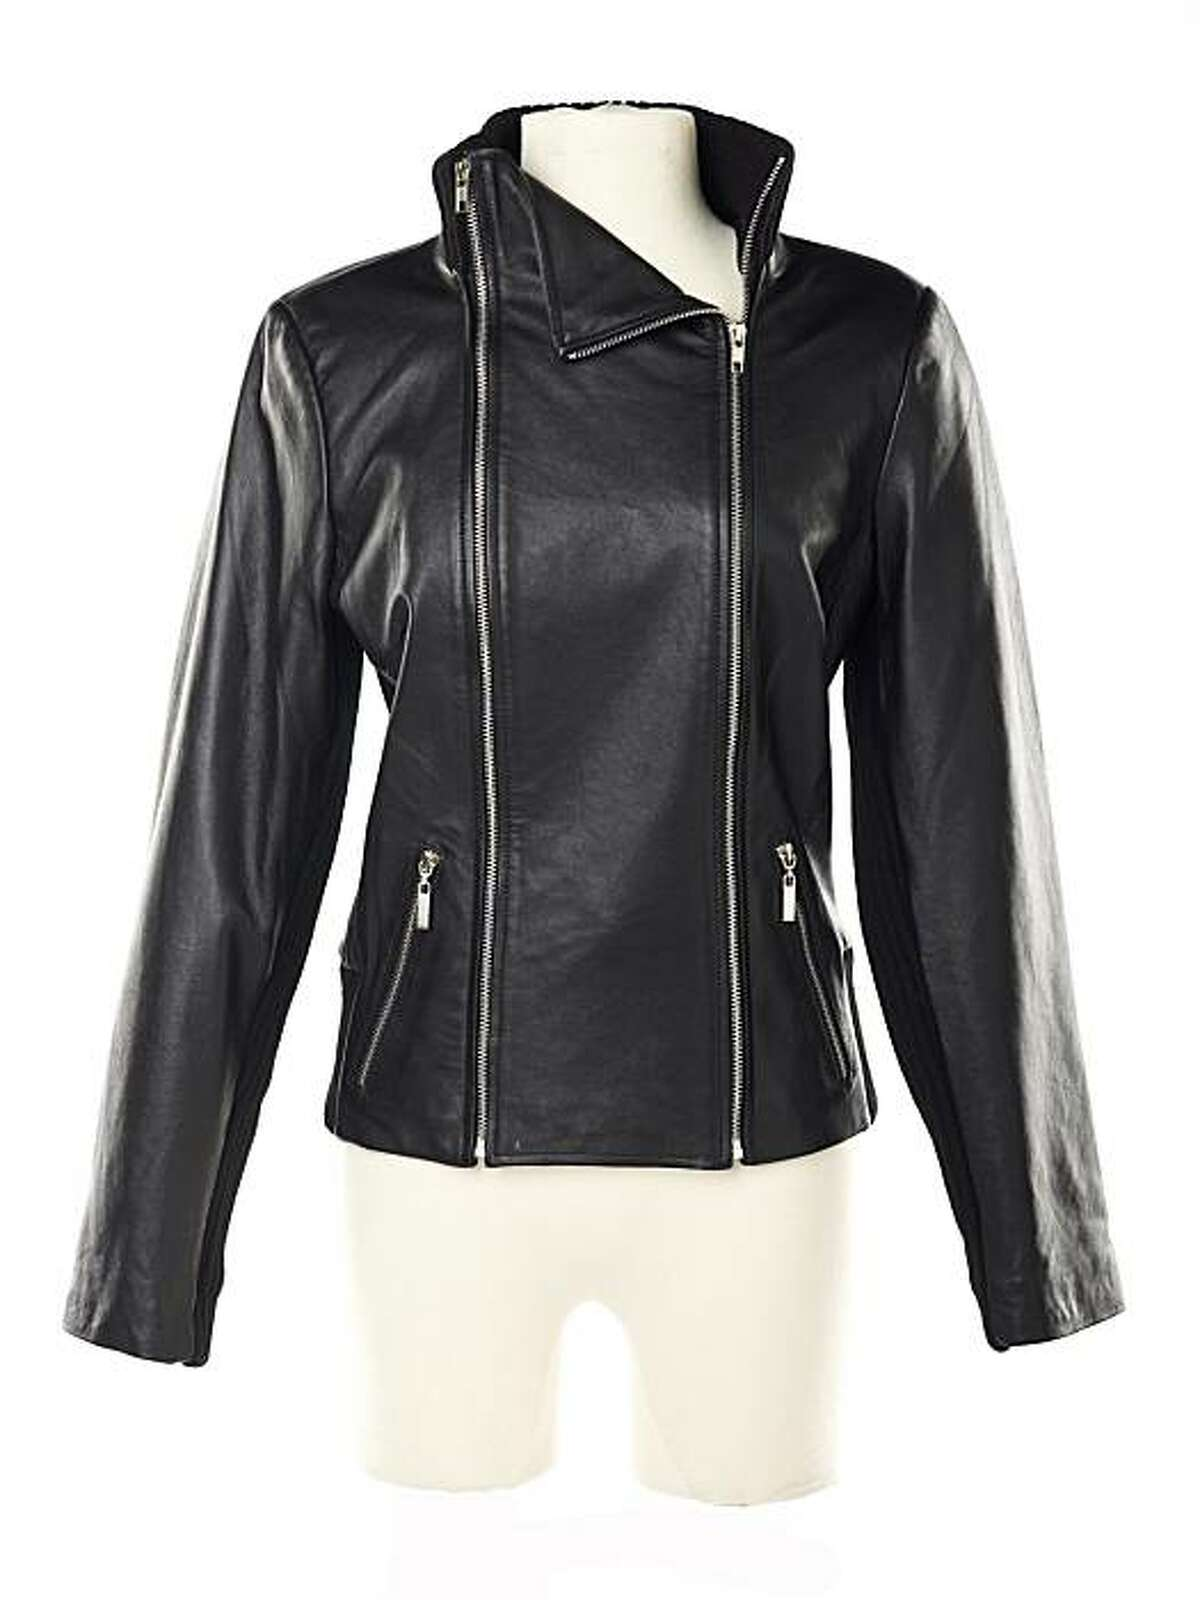 Rachel Zoe Lamb Leather Jacket with Knit Trim (approximately $179.75) on QVC.